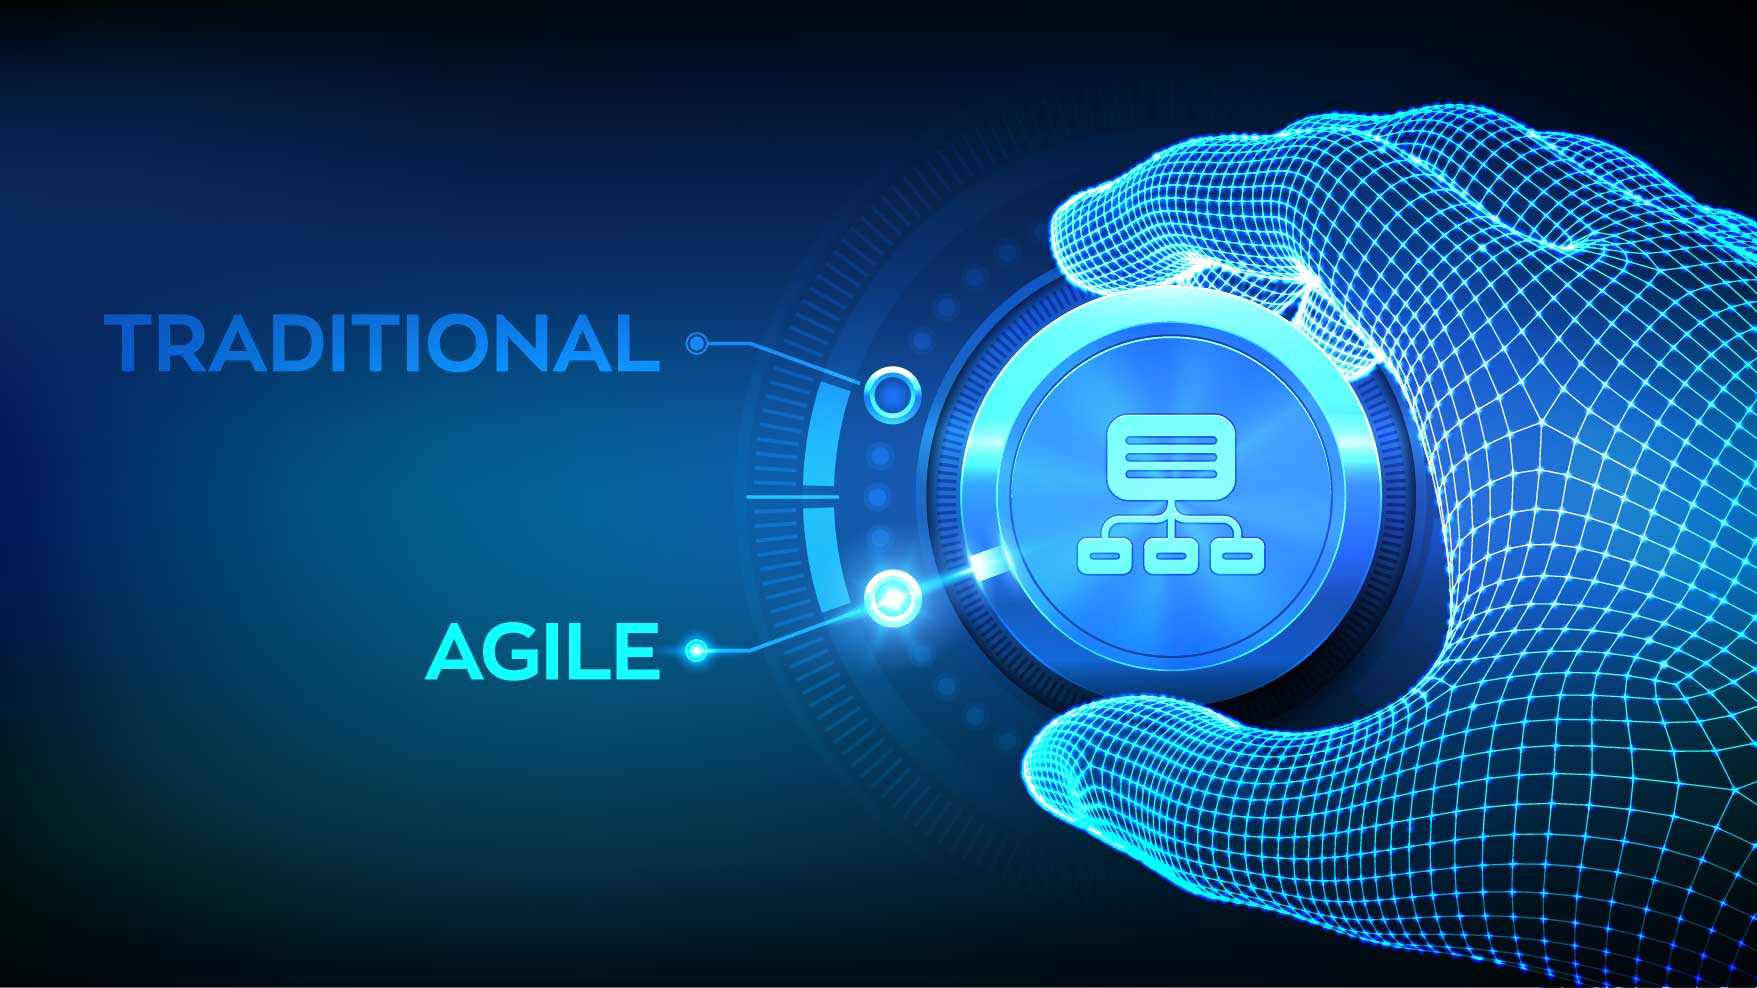 From Traditional to Agile